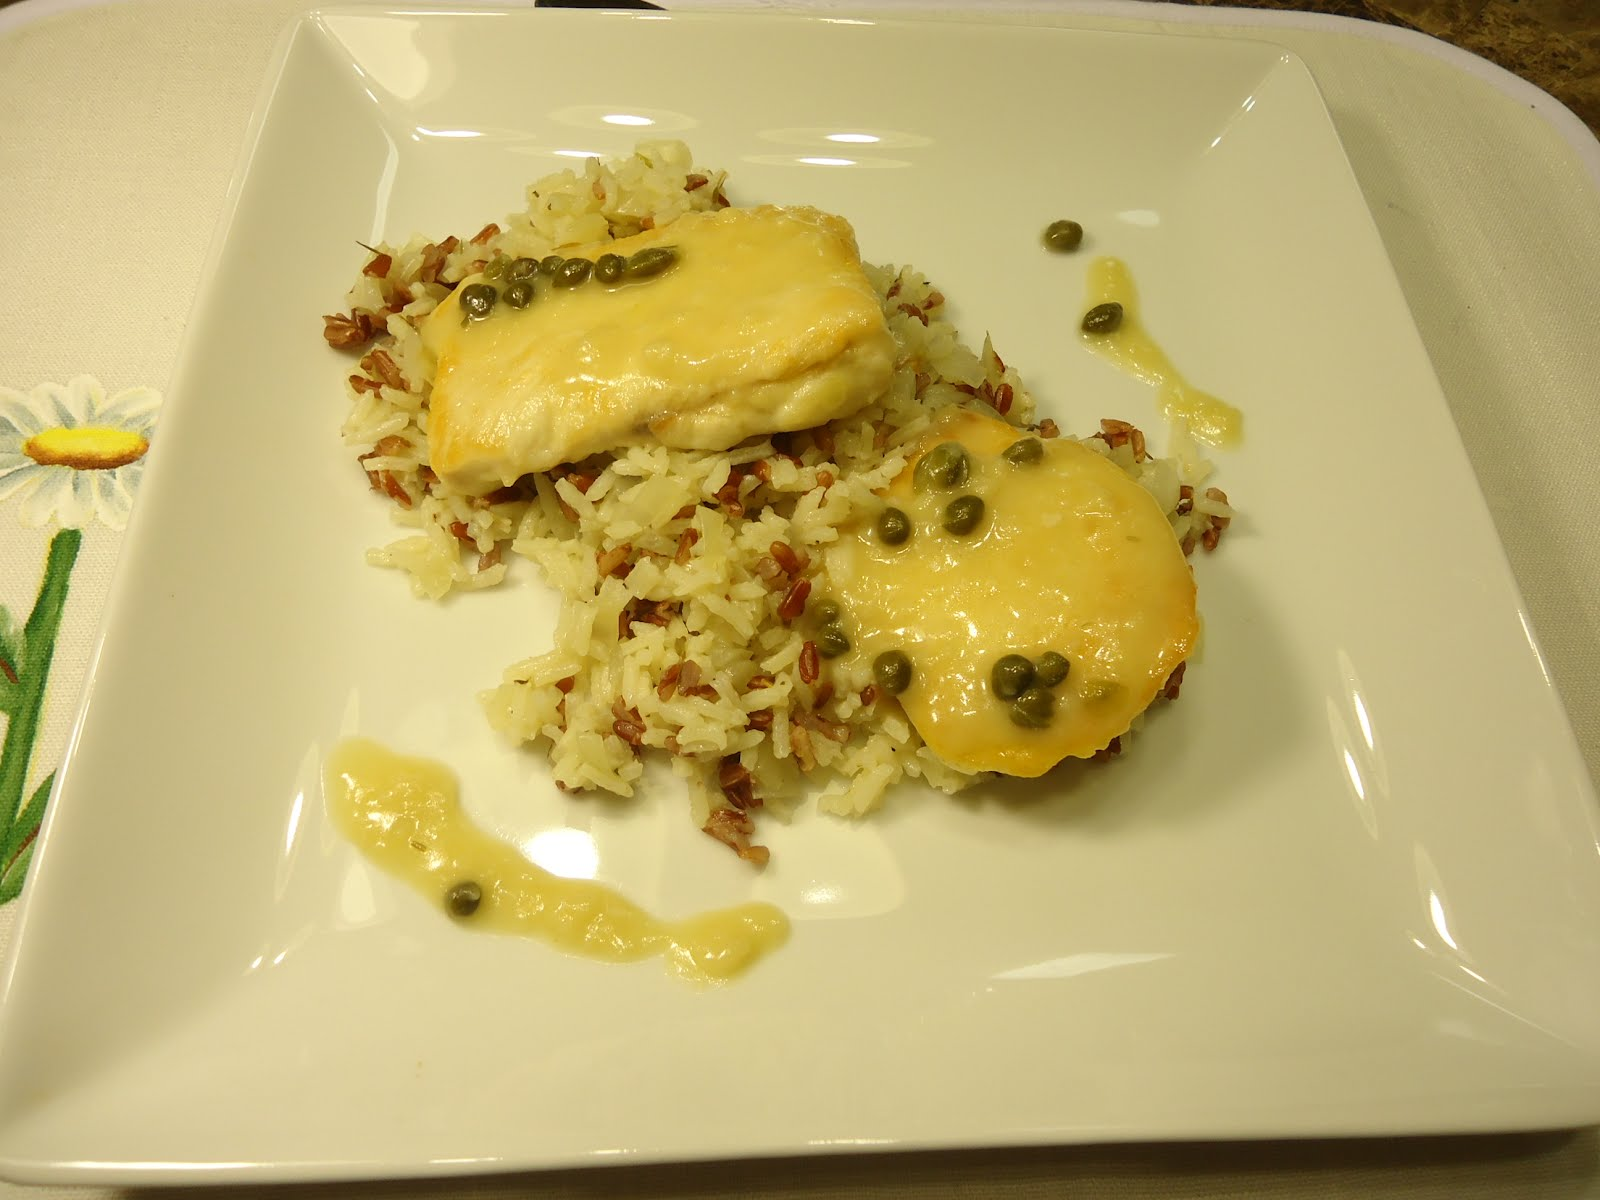 ... and Traveler by Yana Todorova: Chicken cutlets with lemon-caper sauce